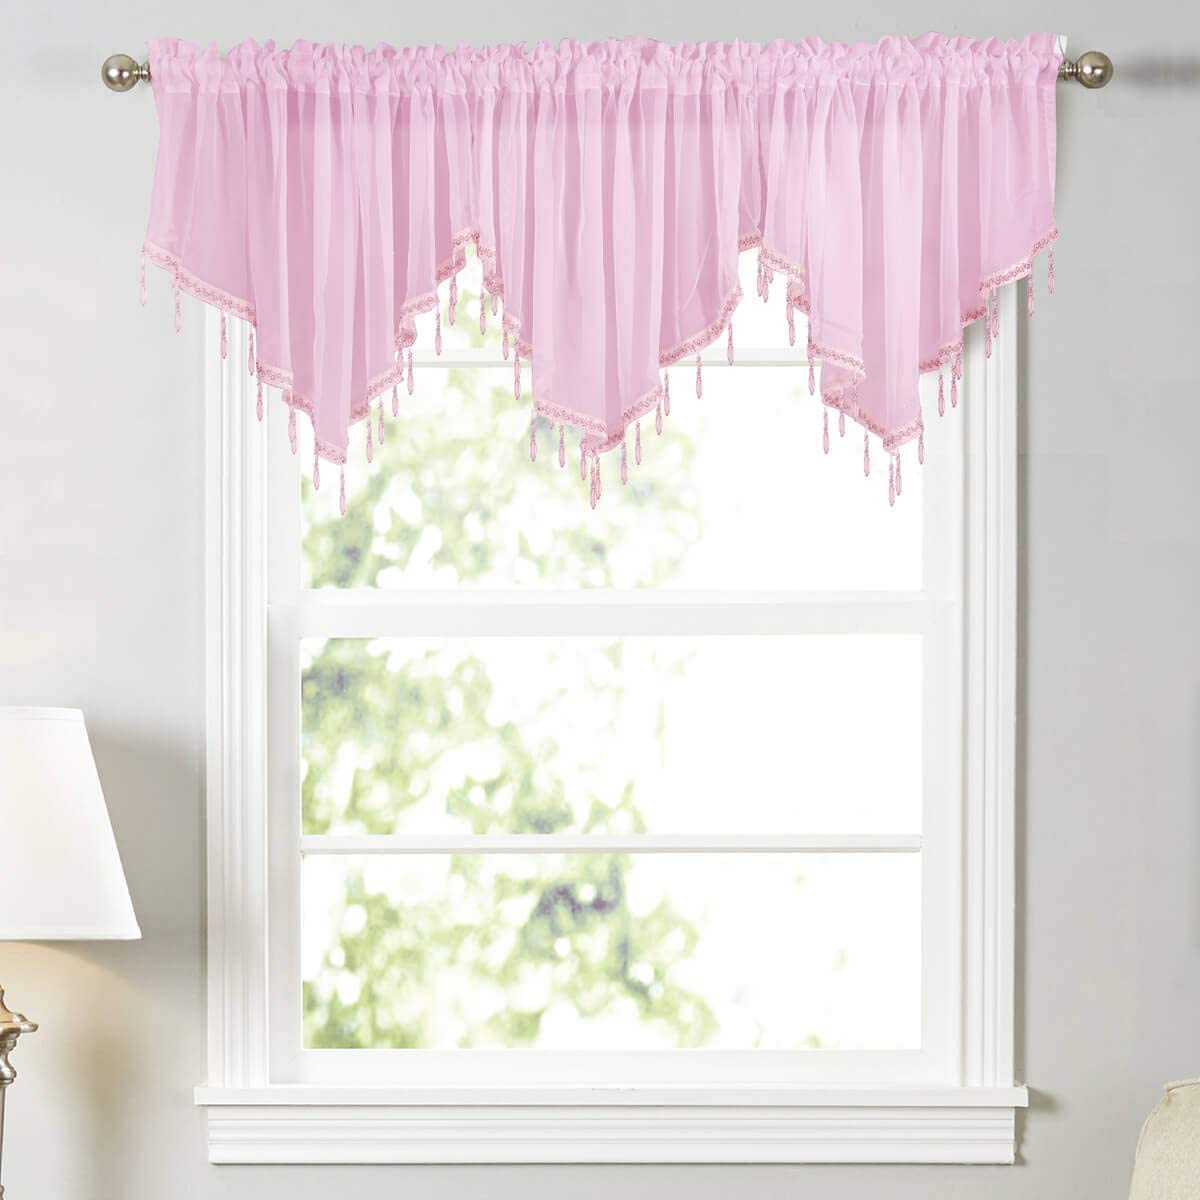 WUBODTI Pink Semi Sheer Beaded Window Valances 3 Pieces Kitchen Cafe Rod Pocket Swag Valance Curtain with Bead Trim for Girls Bedroom Bathroom Nursery Living Room, 51 x 24 Inch Length